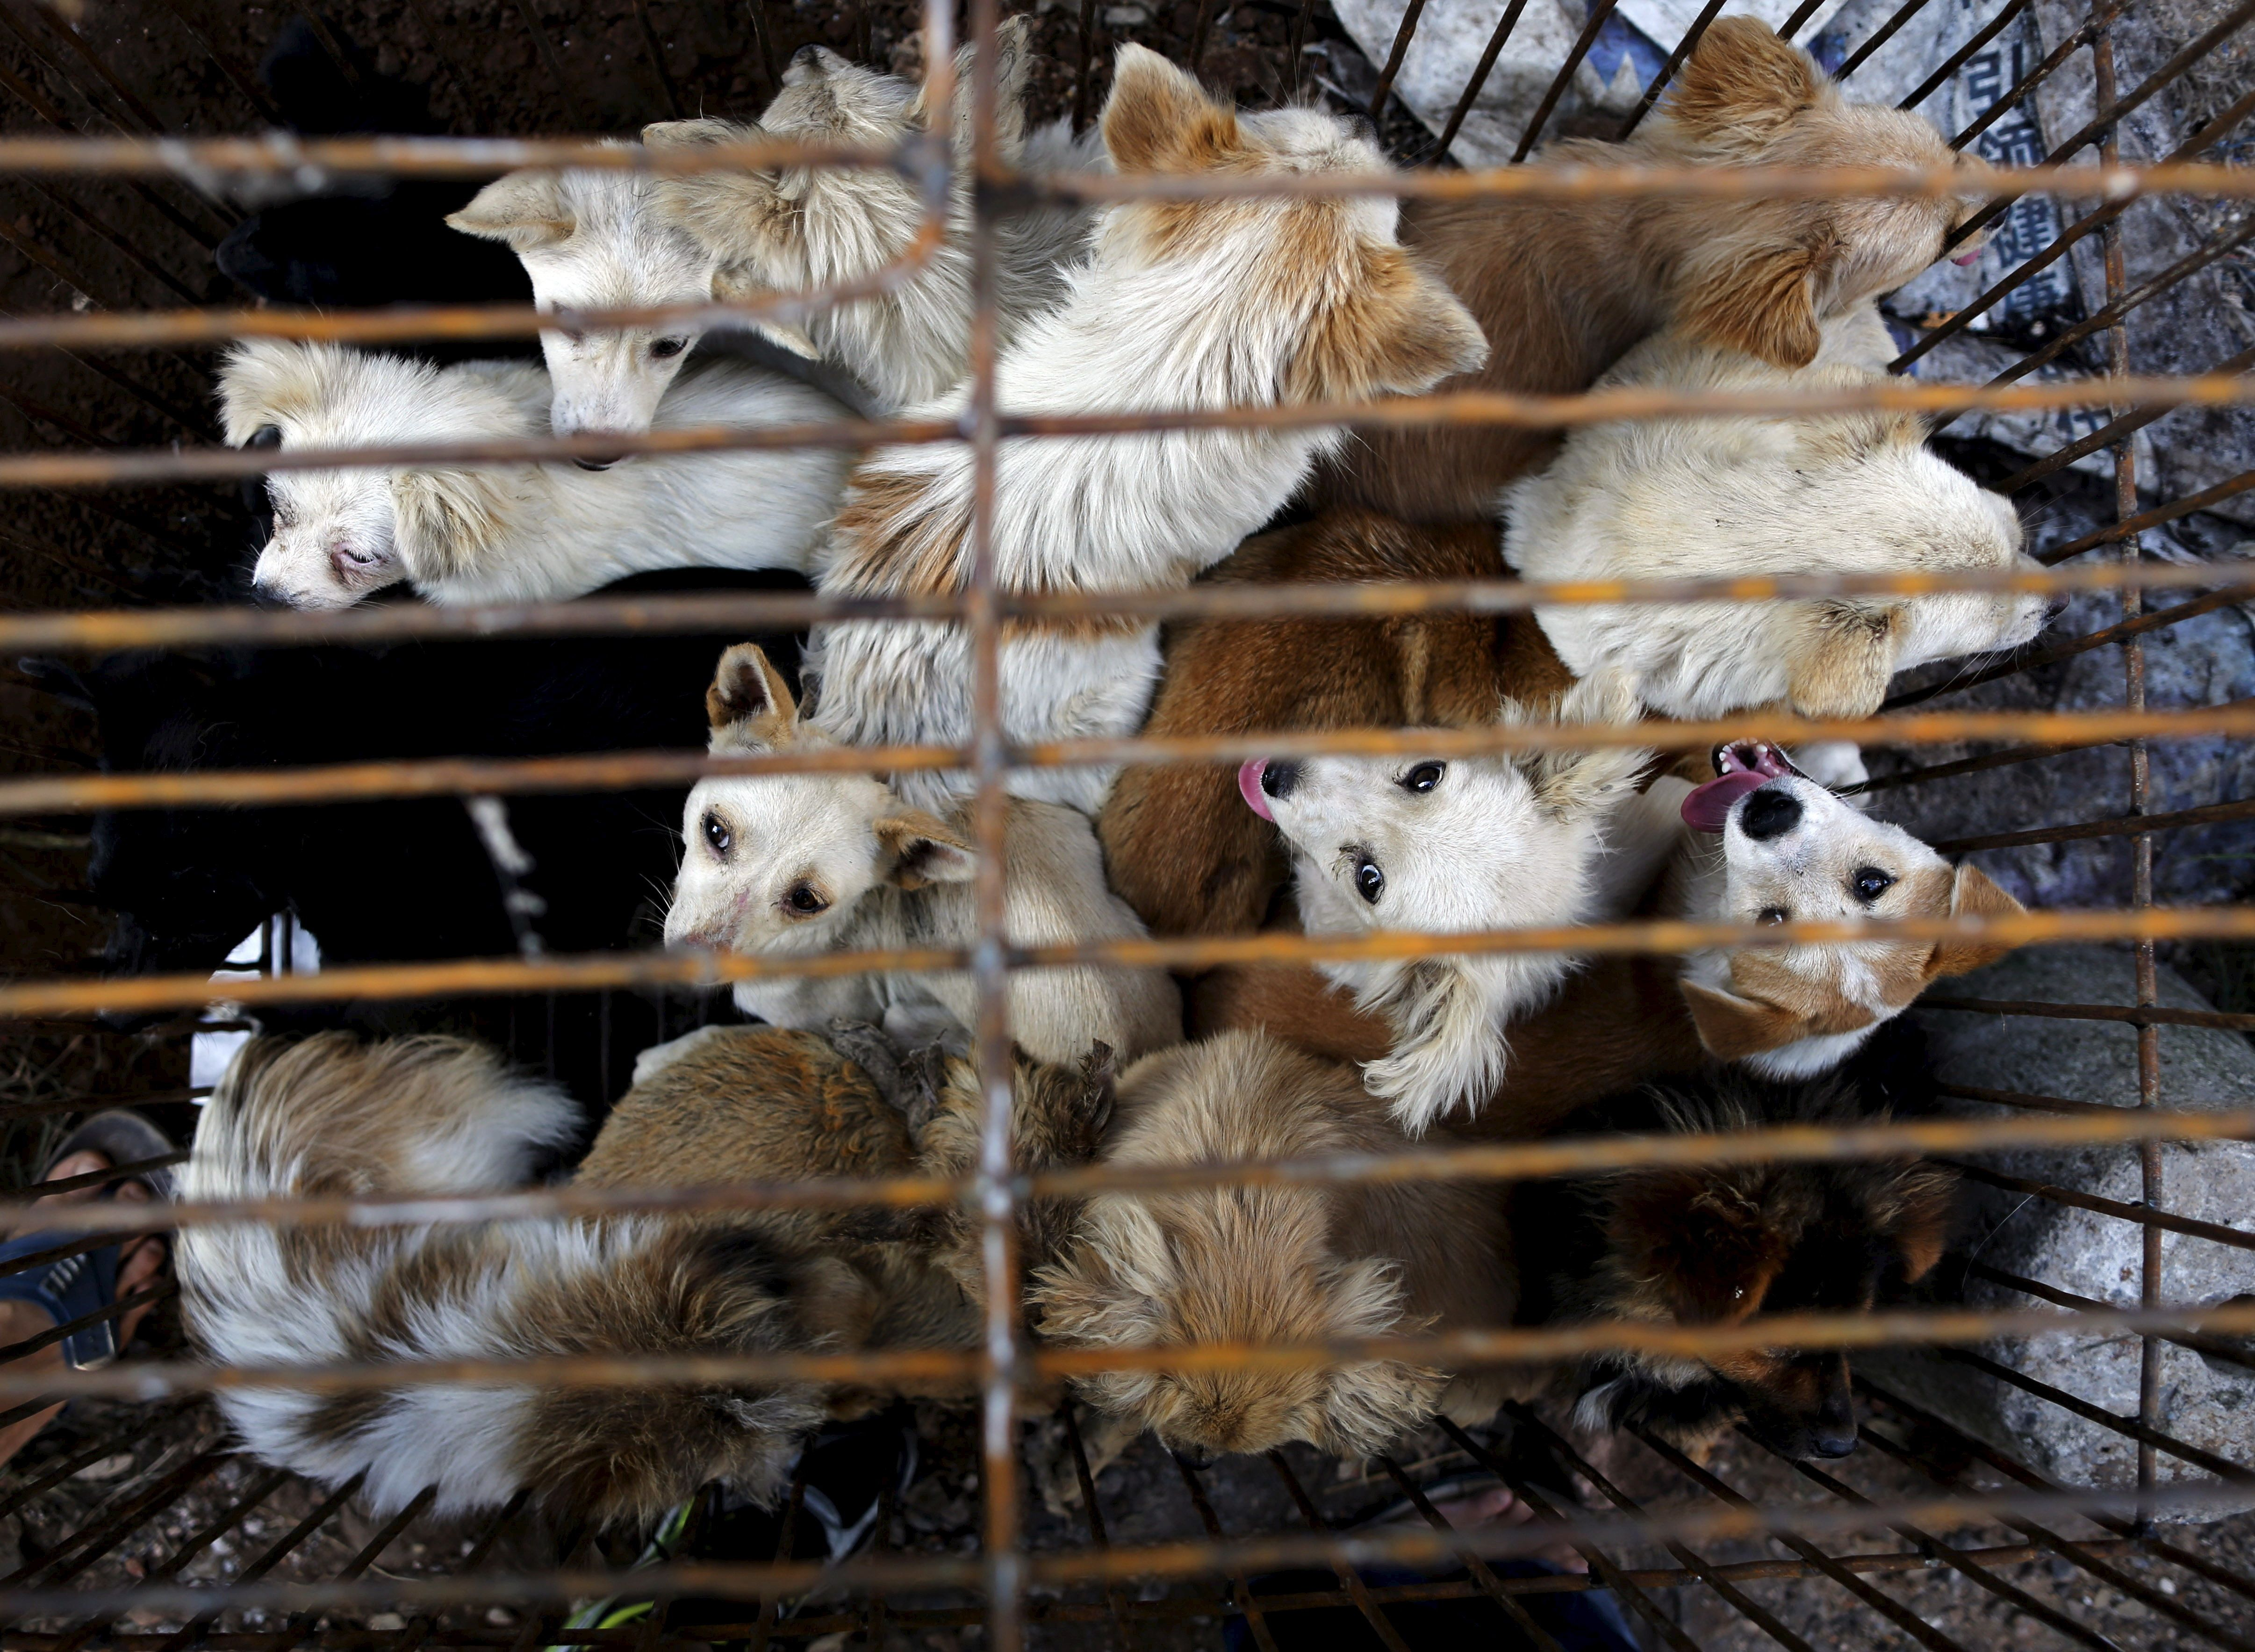 Dogs are kept in a cage at Dashichang dog market ahead of a local dog meat festival in Yulin, Guangxi Autonomous Region, June 21, 2015. In the market, some dogs are sold as pets, while others are sold for dog meat. Local residents in Yulin host small gatherings to consume dog meat and lychees in celebration of the summer solstice which marks the coming of the hottest days for the festival, which this year falls on Monday. REUTERS/Kim Kyung-Hoon